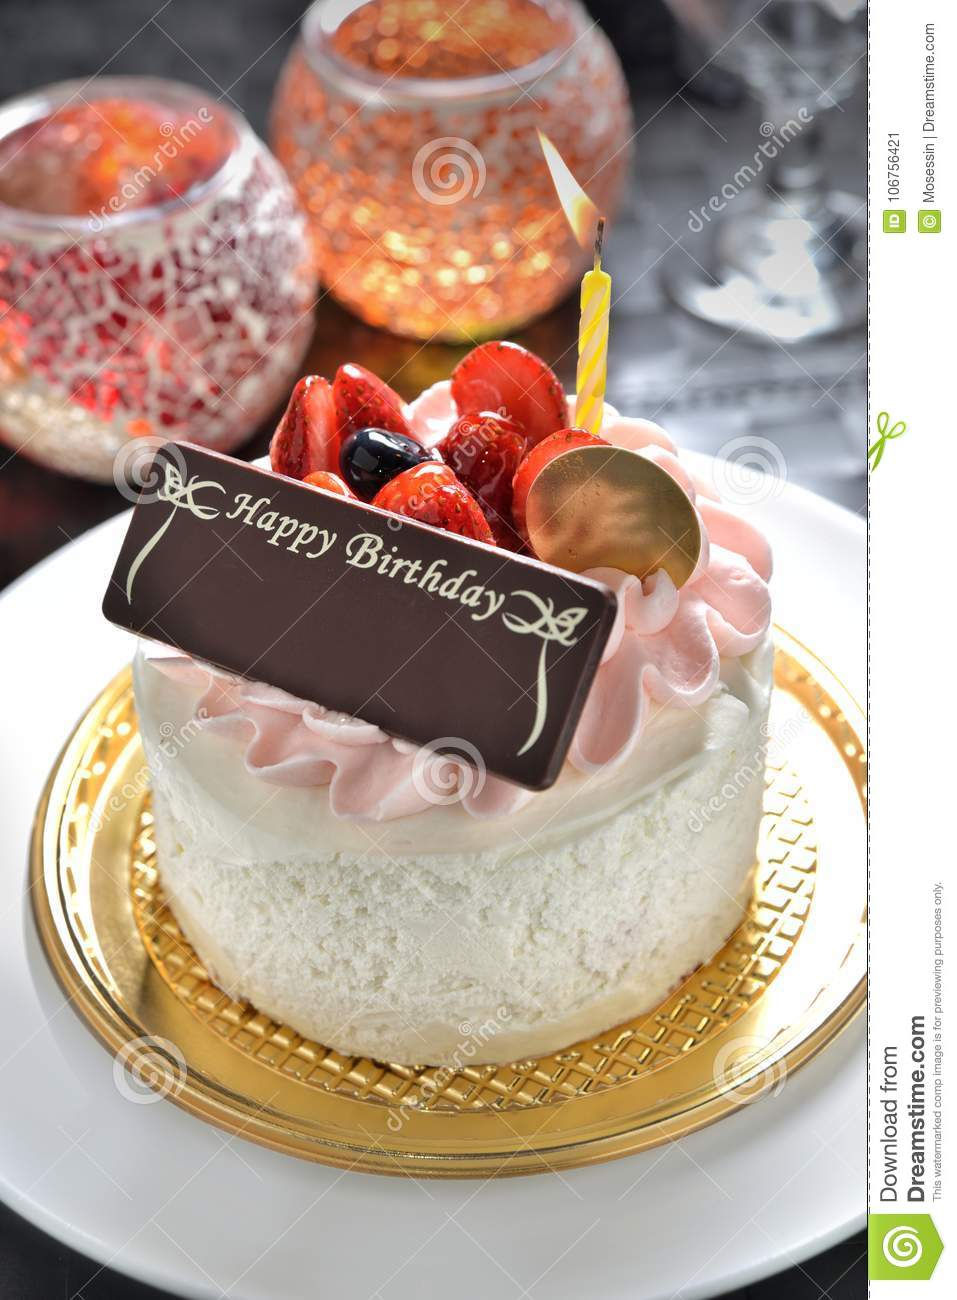 Download Romantic Birthday Cake With Name Images